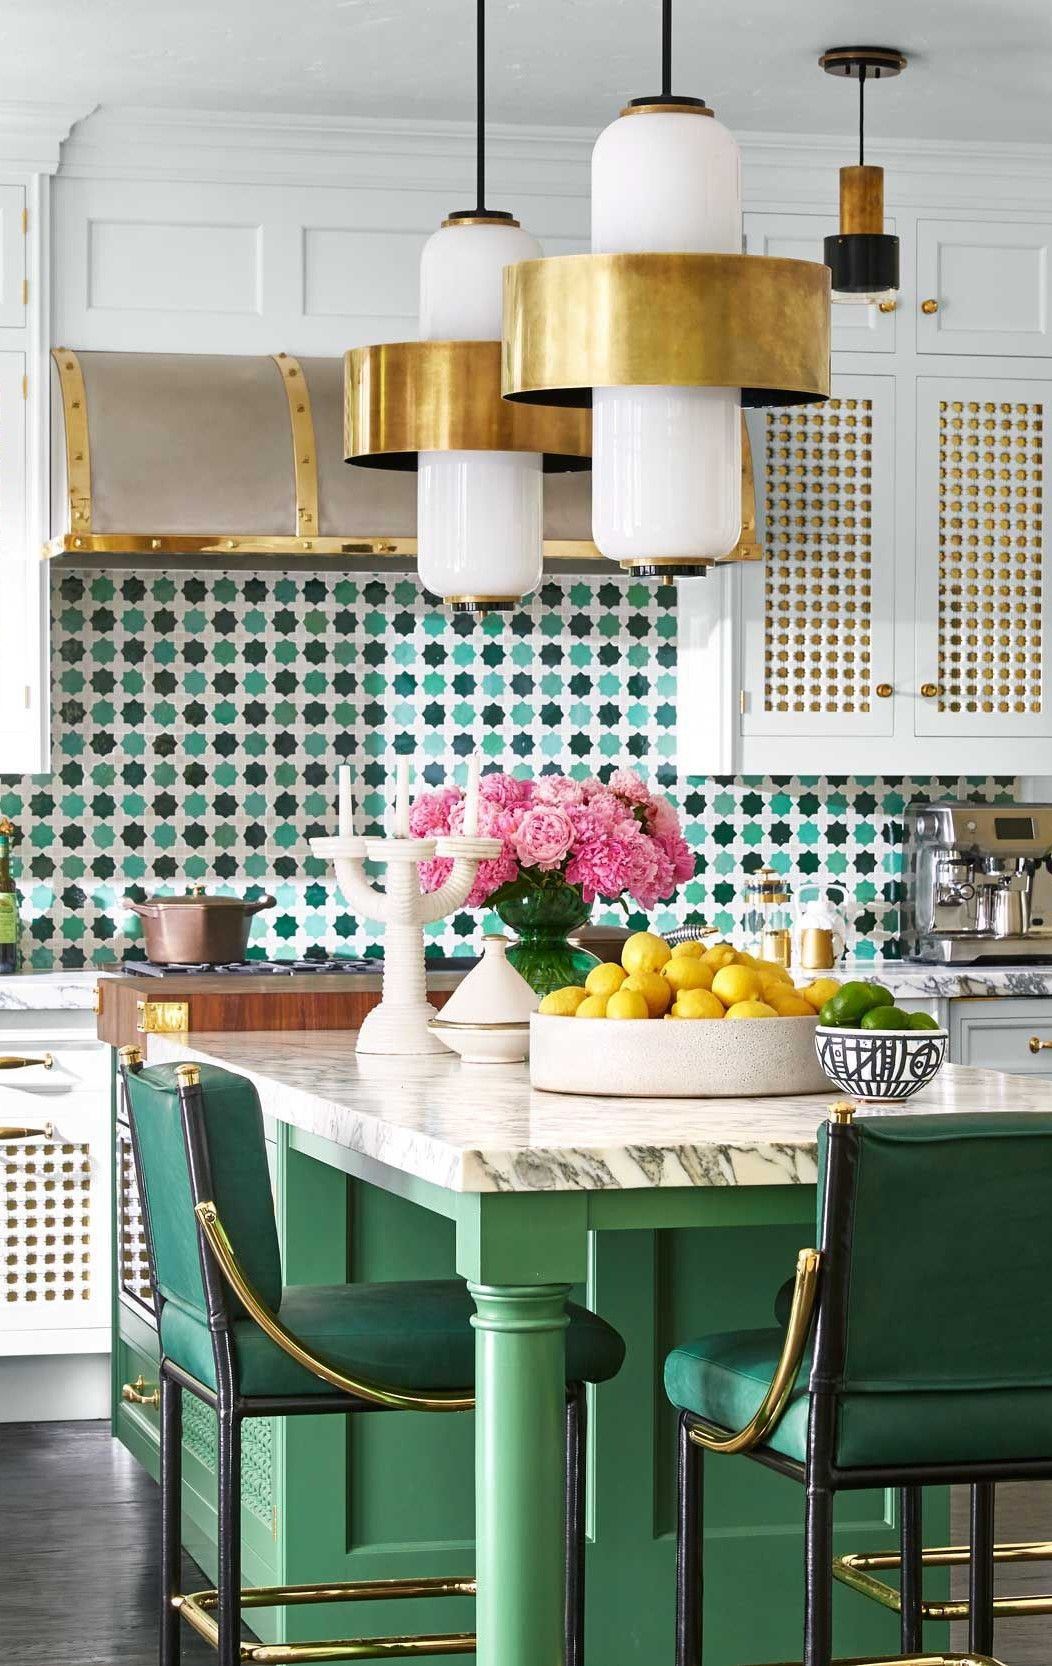 Photo of Modern, Colorful, Festive Kitchen Design with Drum Style Pendants and Green Tile Accents